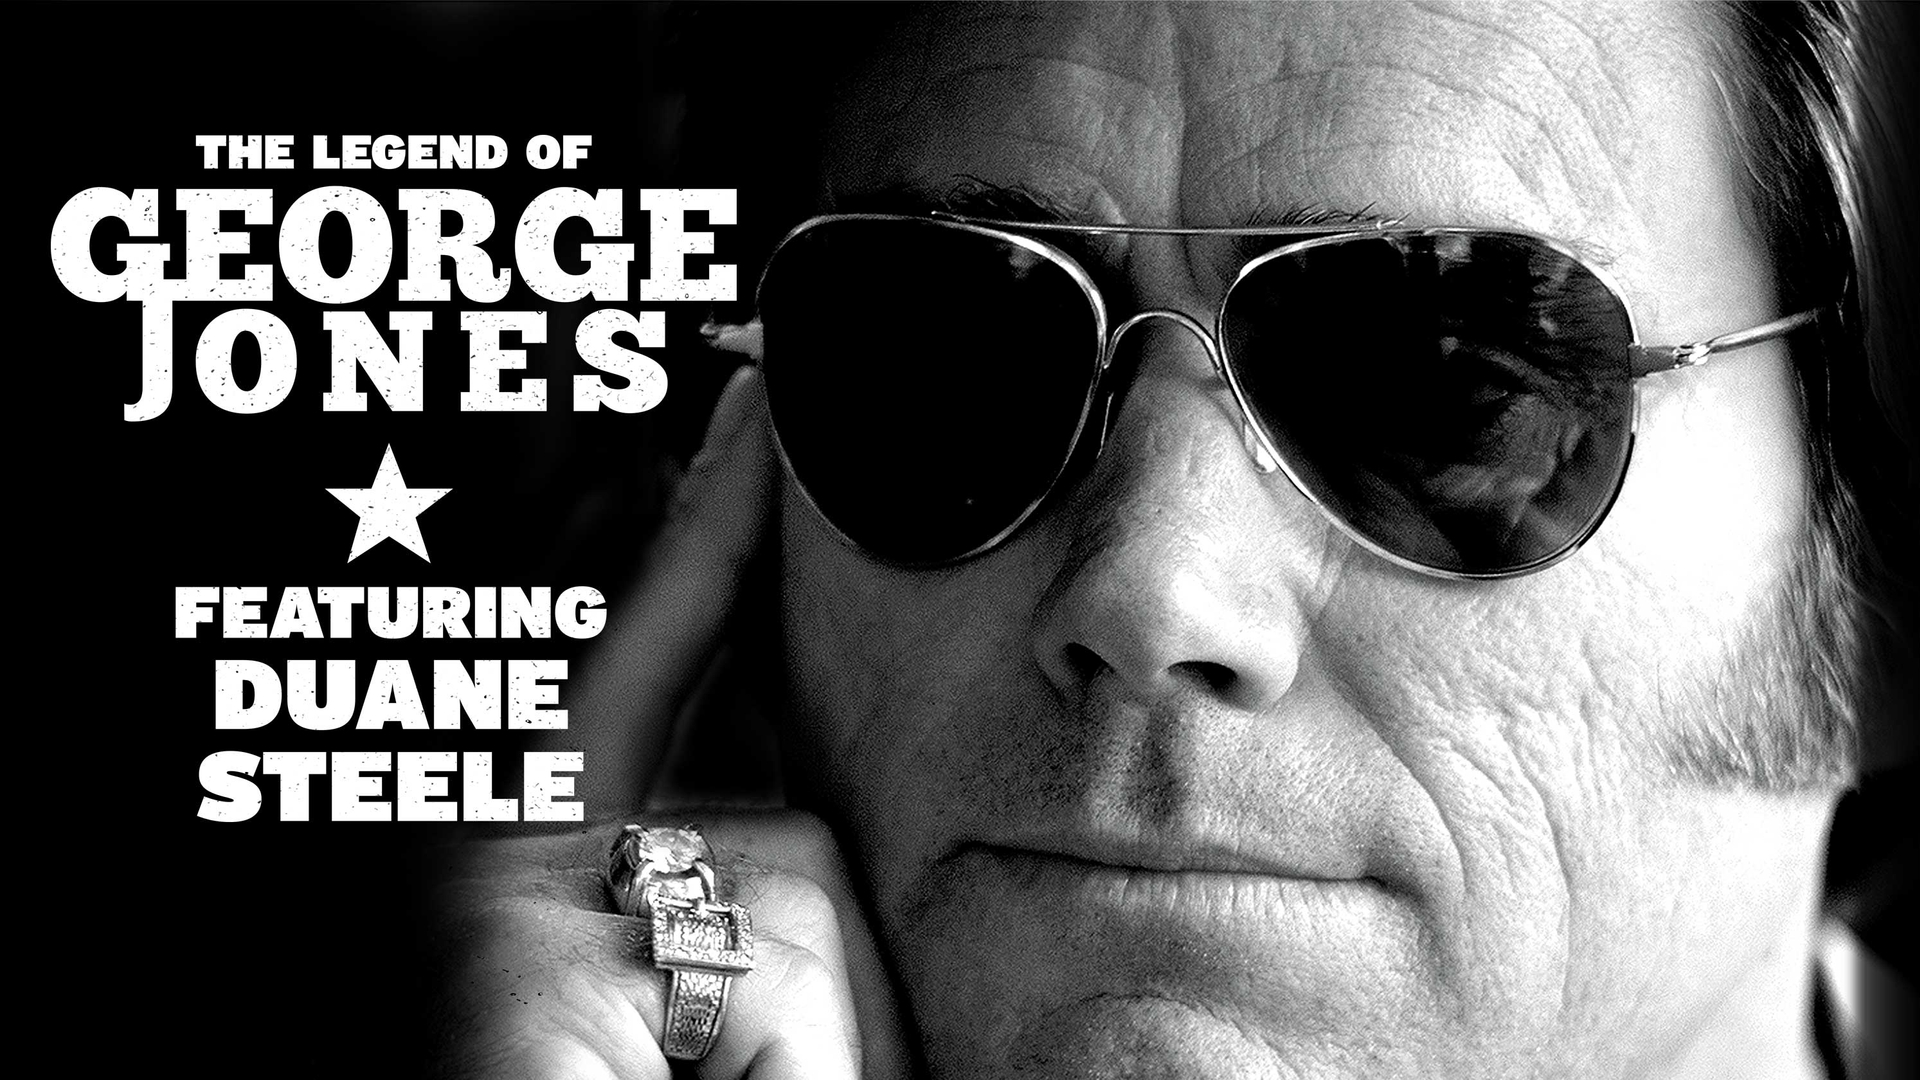 Book The Legend Of George Jones featuring Duane Steele